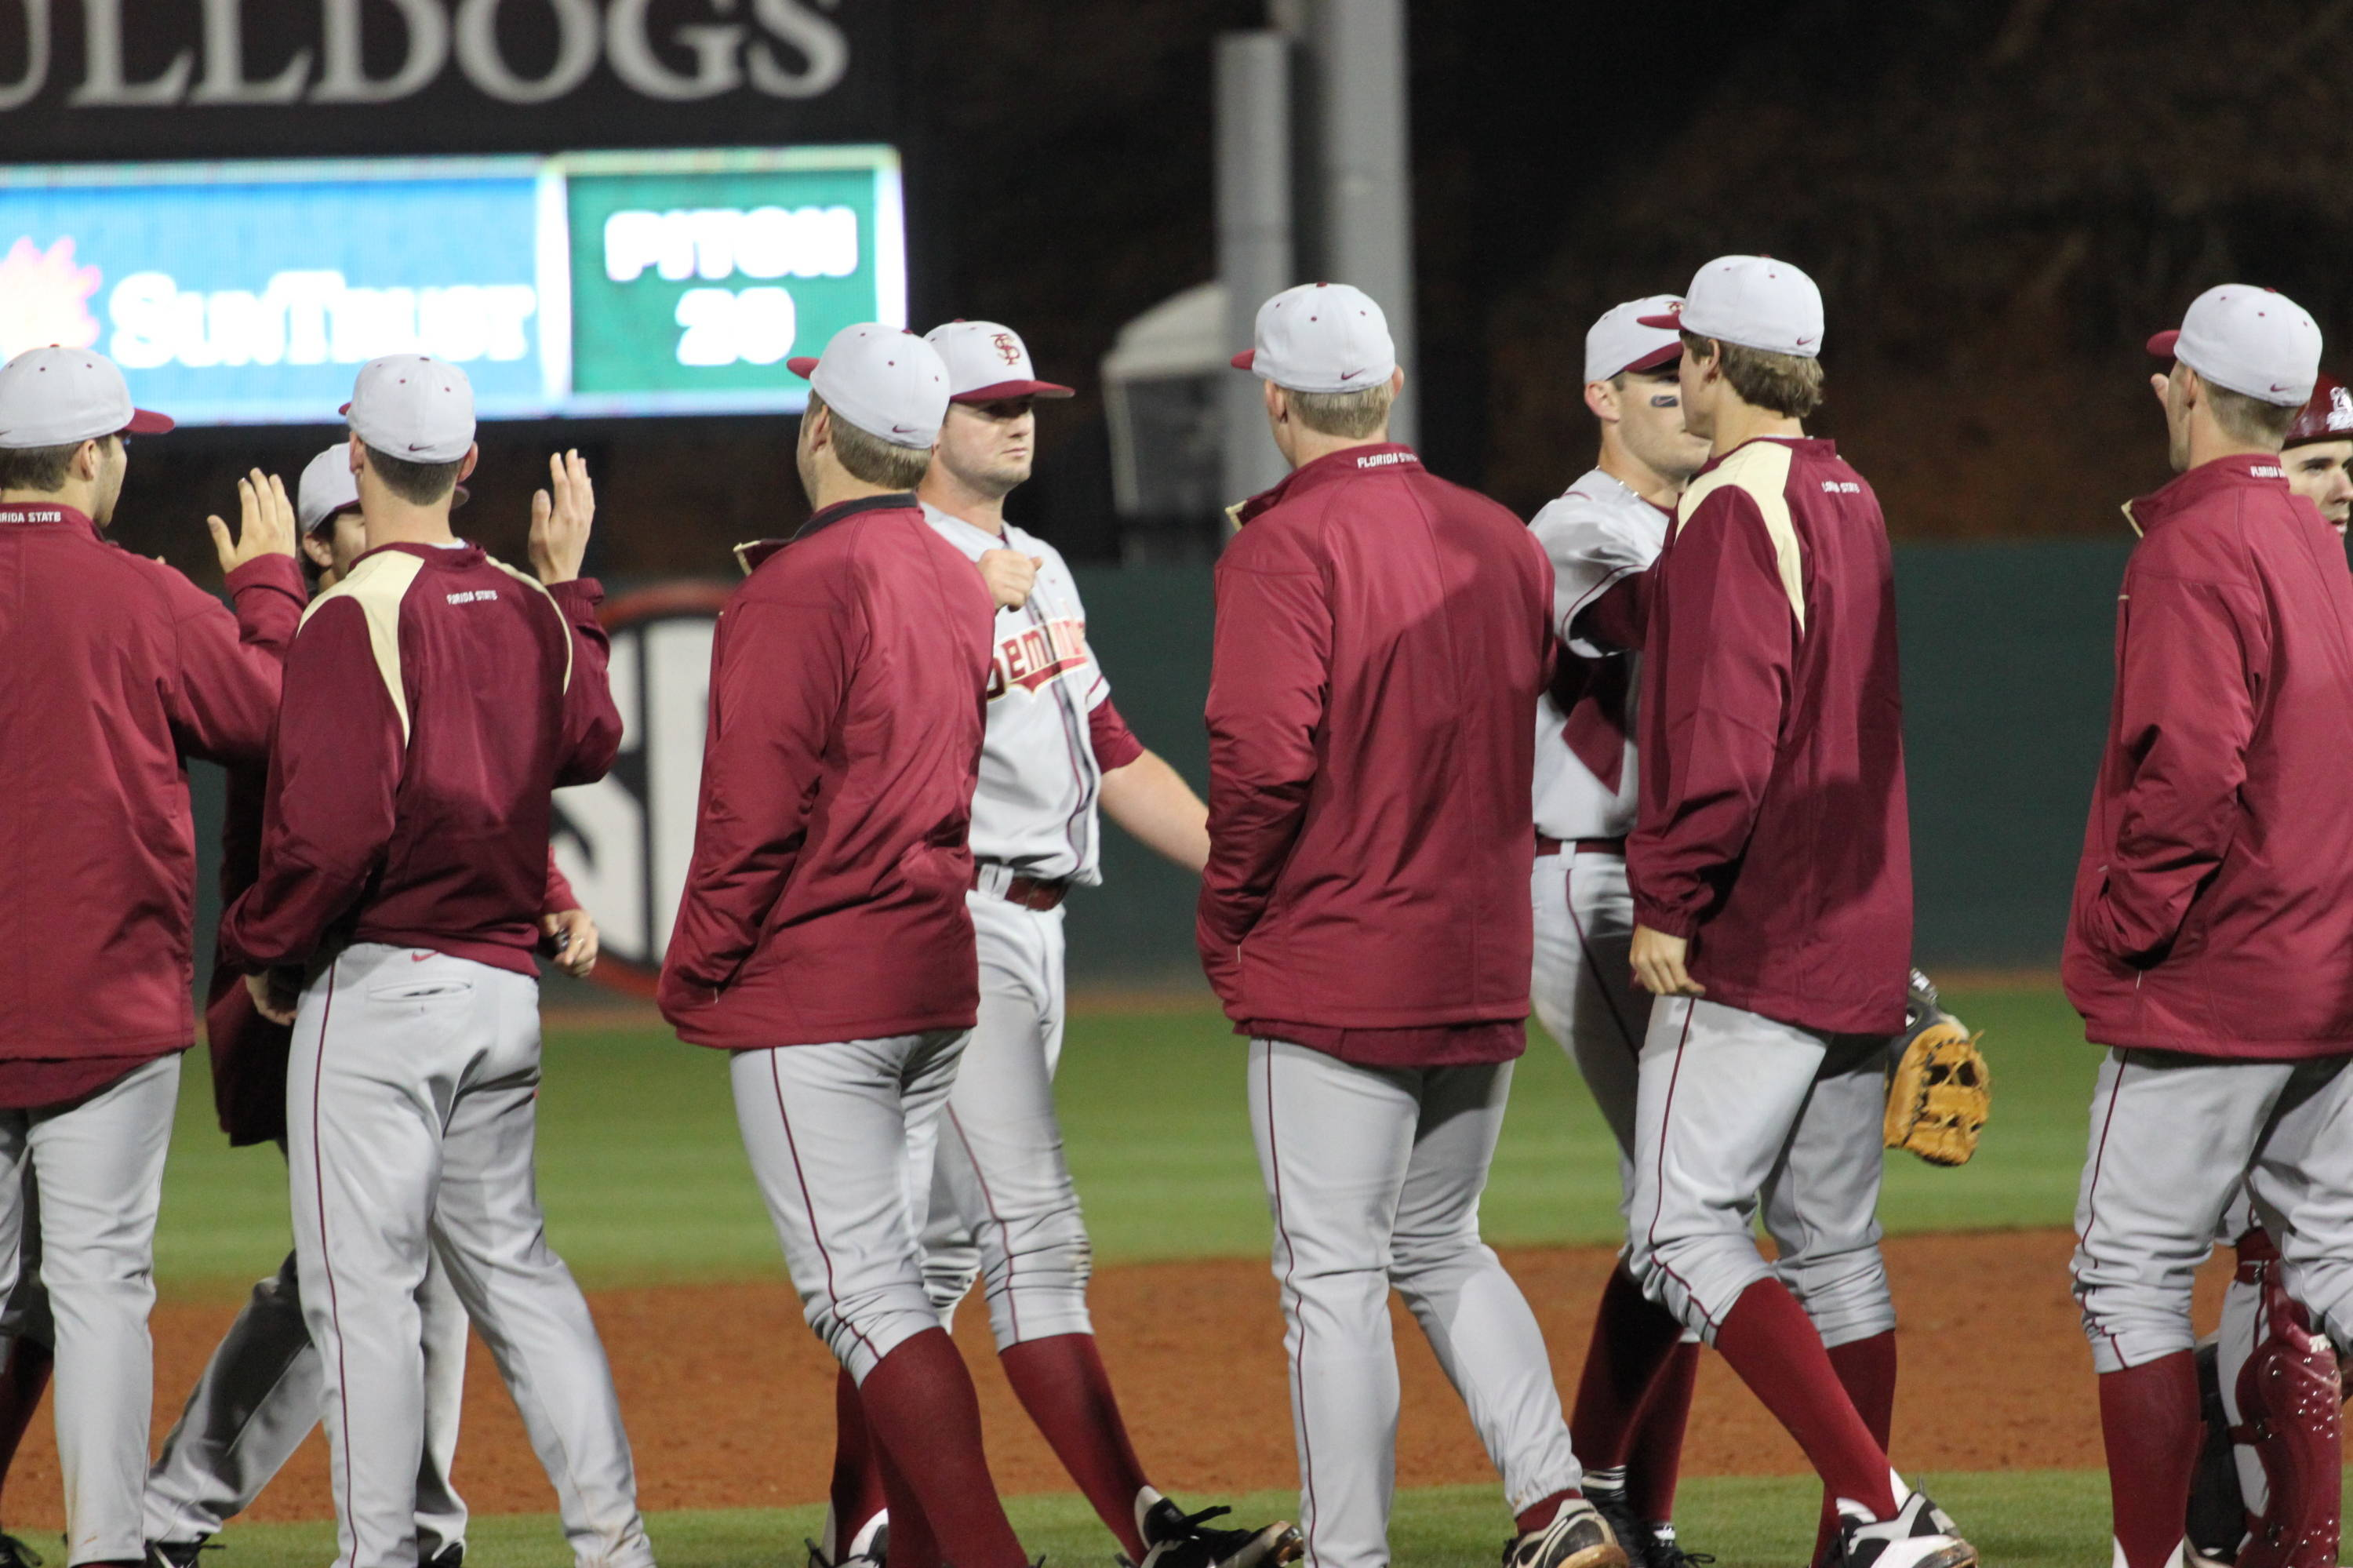 The Seminoles win, 6-5